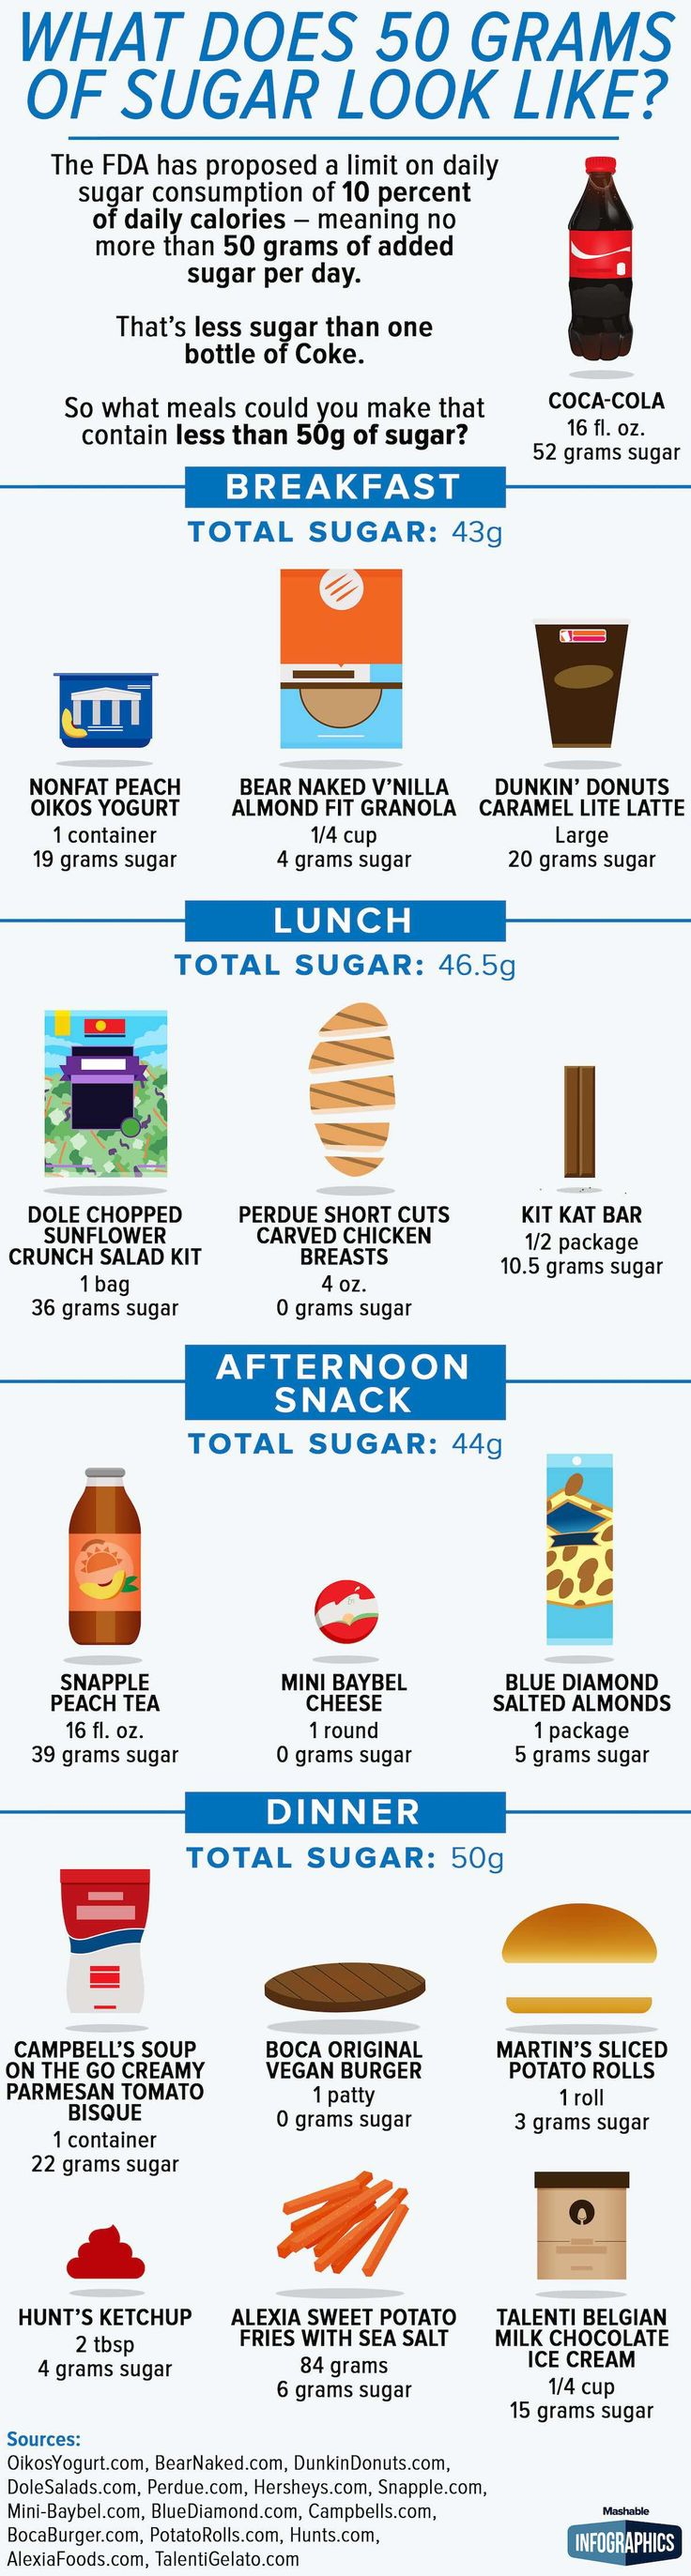 Infographic on how sugar sneaks into daily meals.